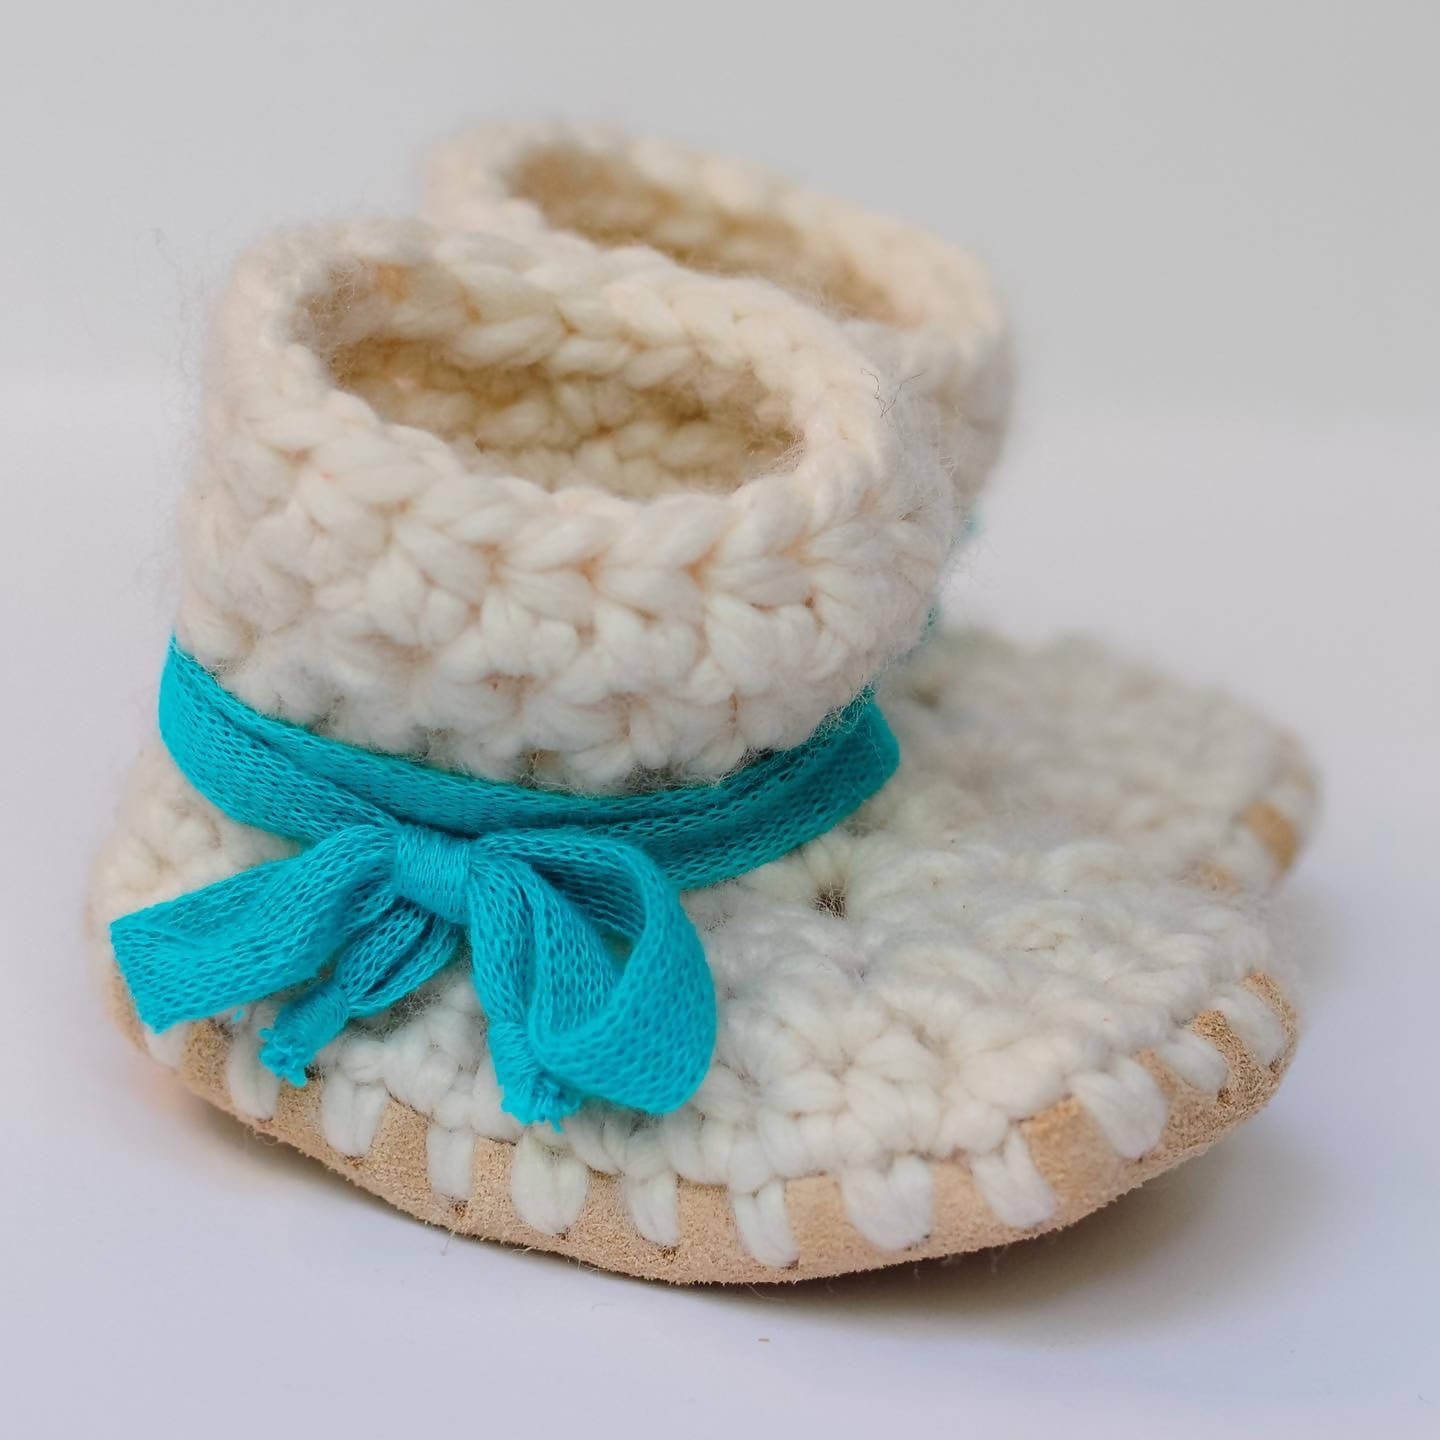 Baby Shoes // Baby Slippers // Crochet Booties // Leather Bottom Boots // Newborn Baby Toddler Child - NEUTRAL with TEAL Laces